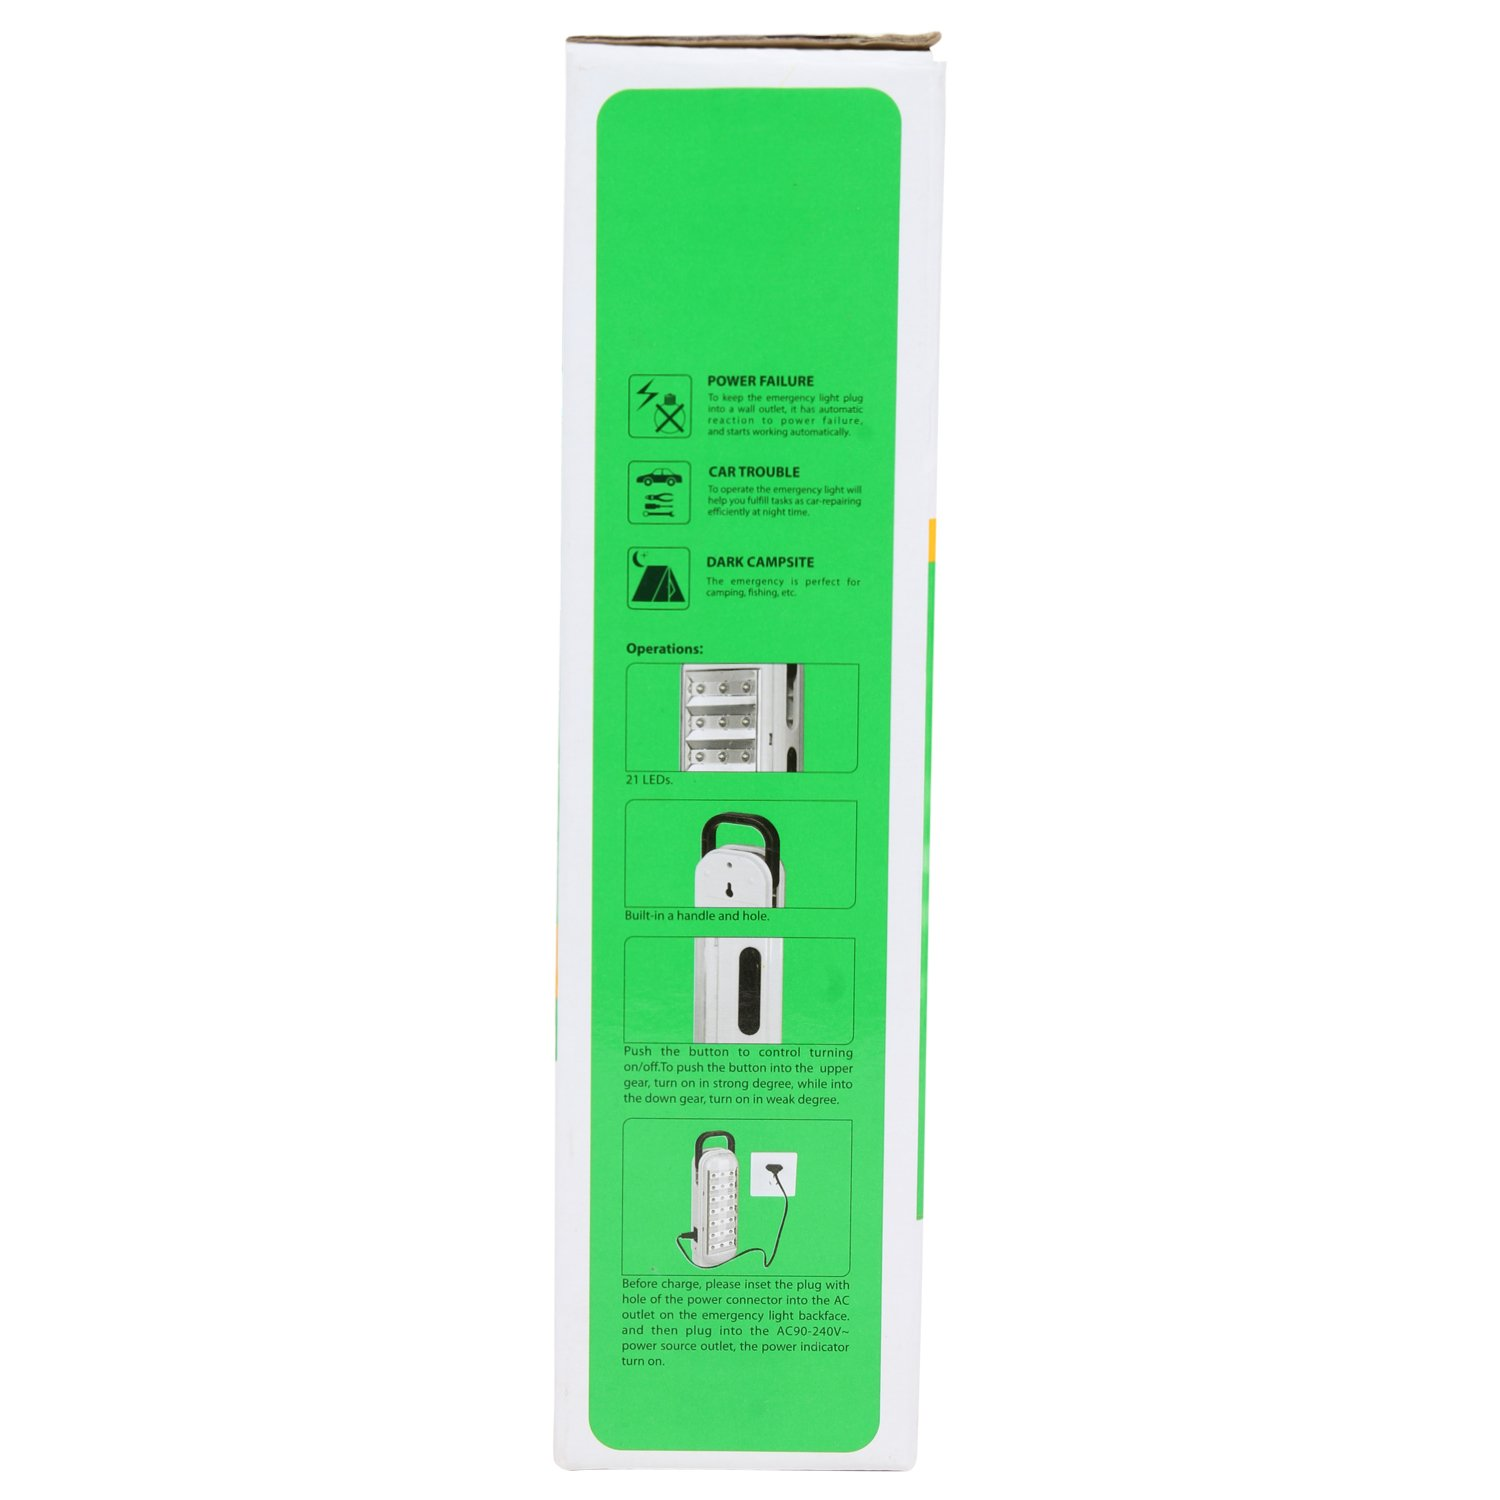 Buy Maxmart India Dp Led Rechargeable Emergency Light Online At Low Cost Automatic Ligh Prices In